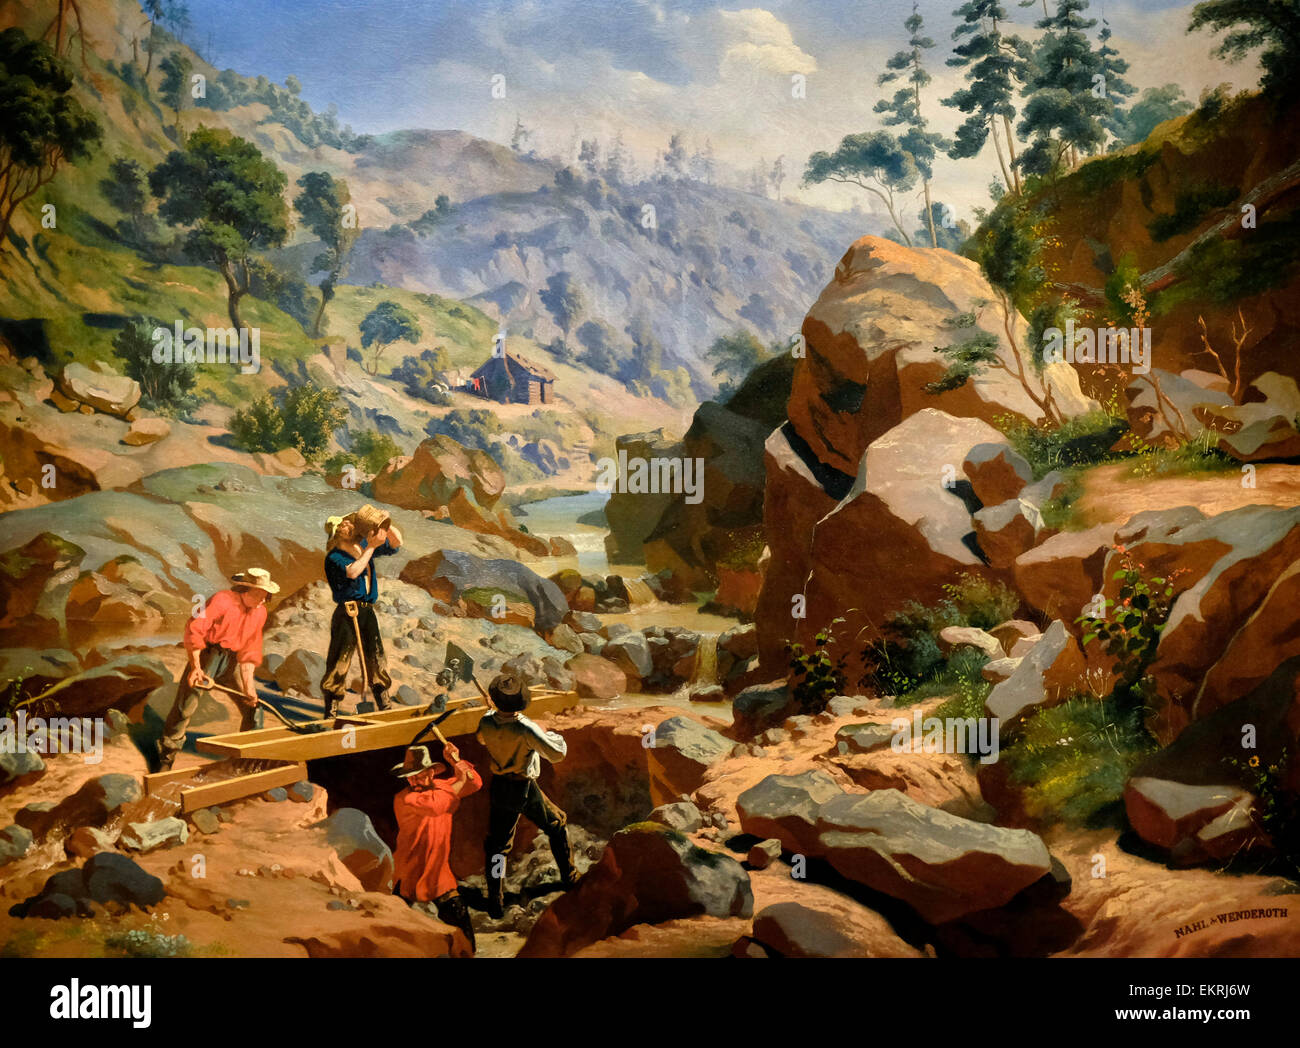 Miners in the Sierras, circa 1852  Charles Christian Nahl - Stock Image